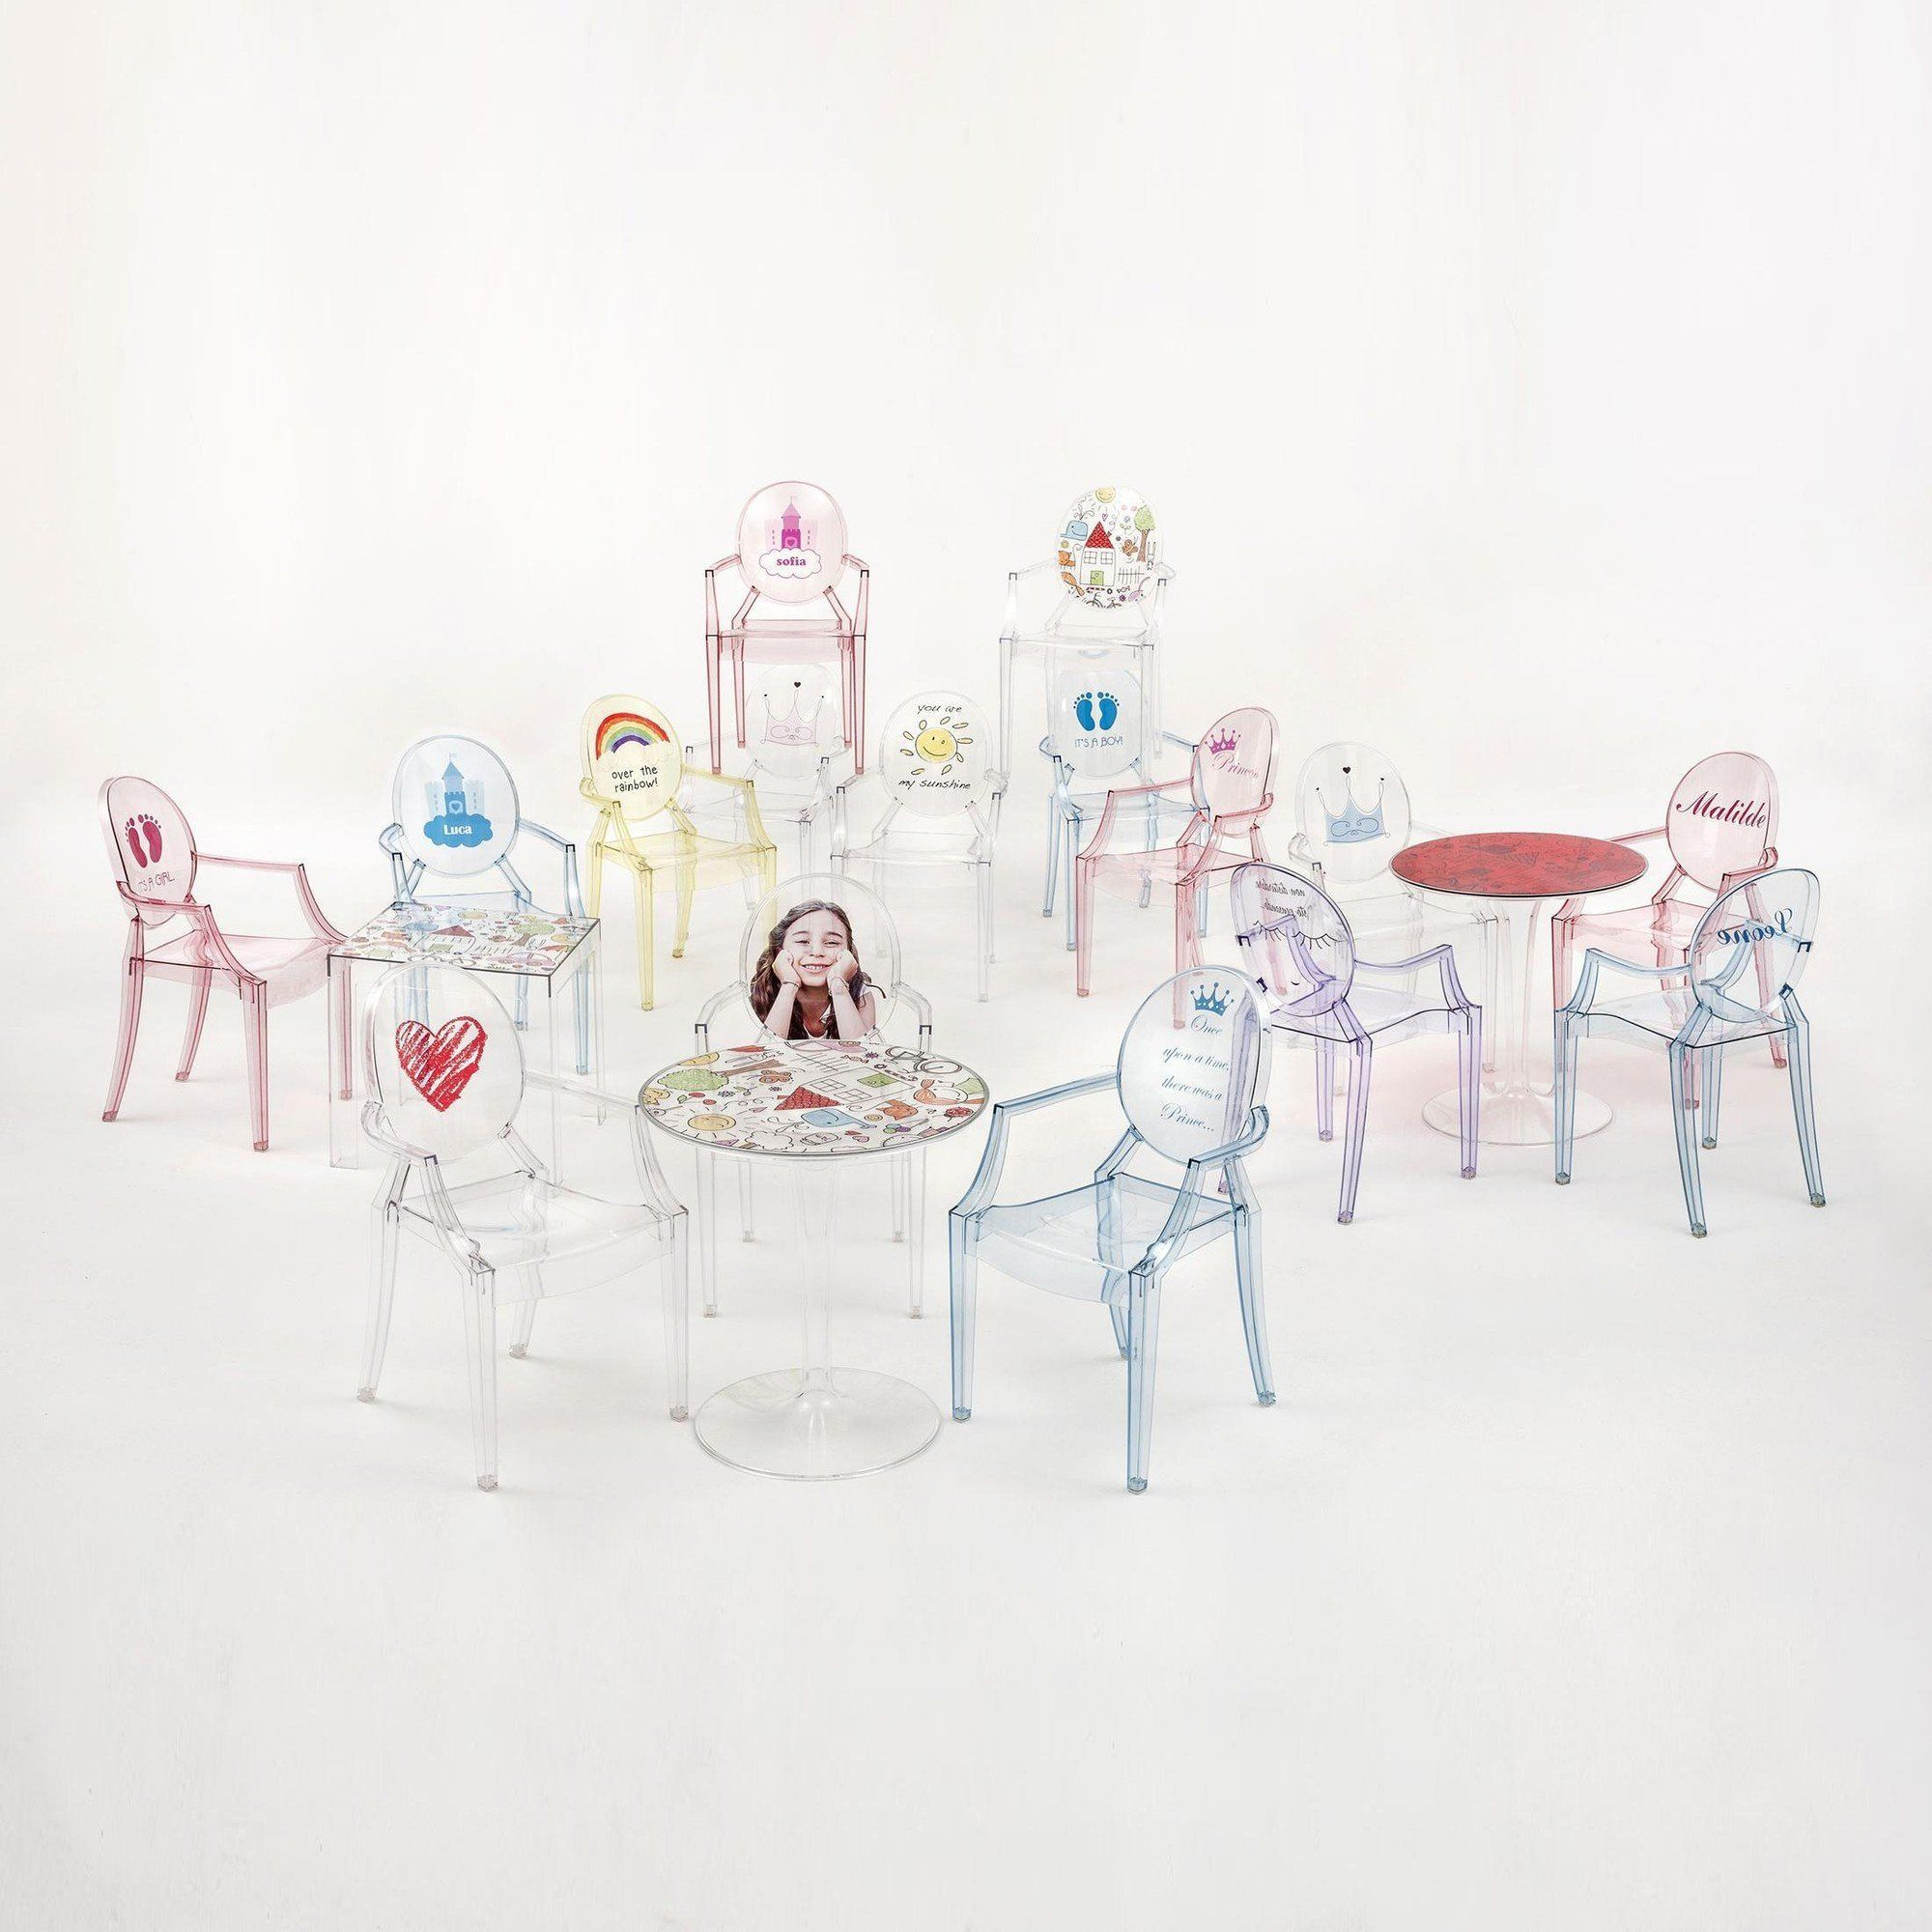 chiavari starck decor ikea chair hire hostess pads victorian table seat home dining are that co acrylic style cheap armchair out wedding recent used chairs fusion tables coffee philippe round events for of lucite vintage rent ghost and